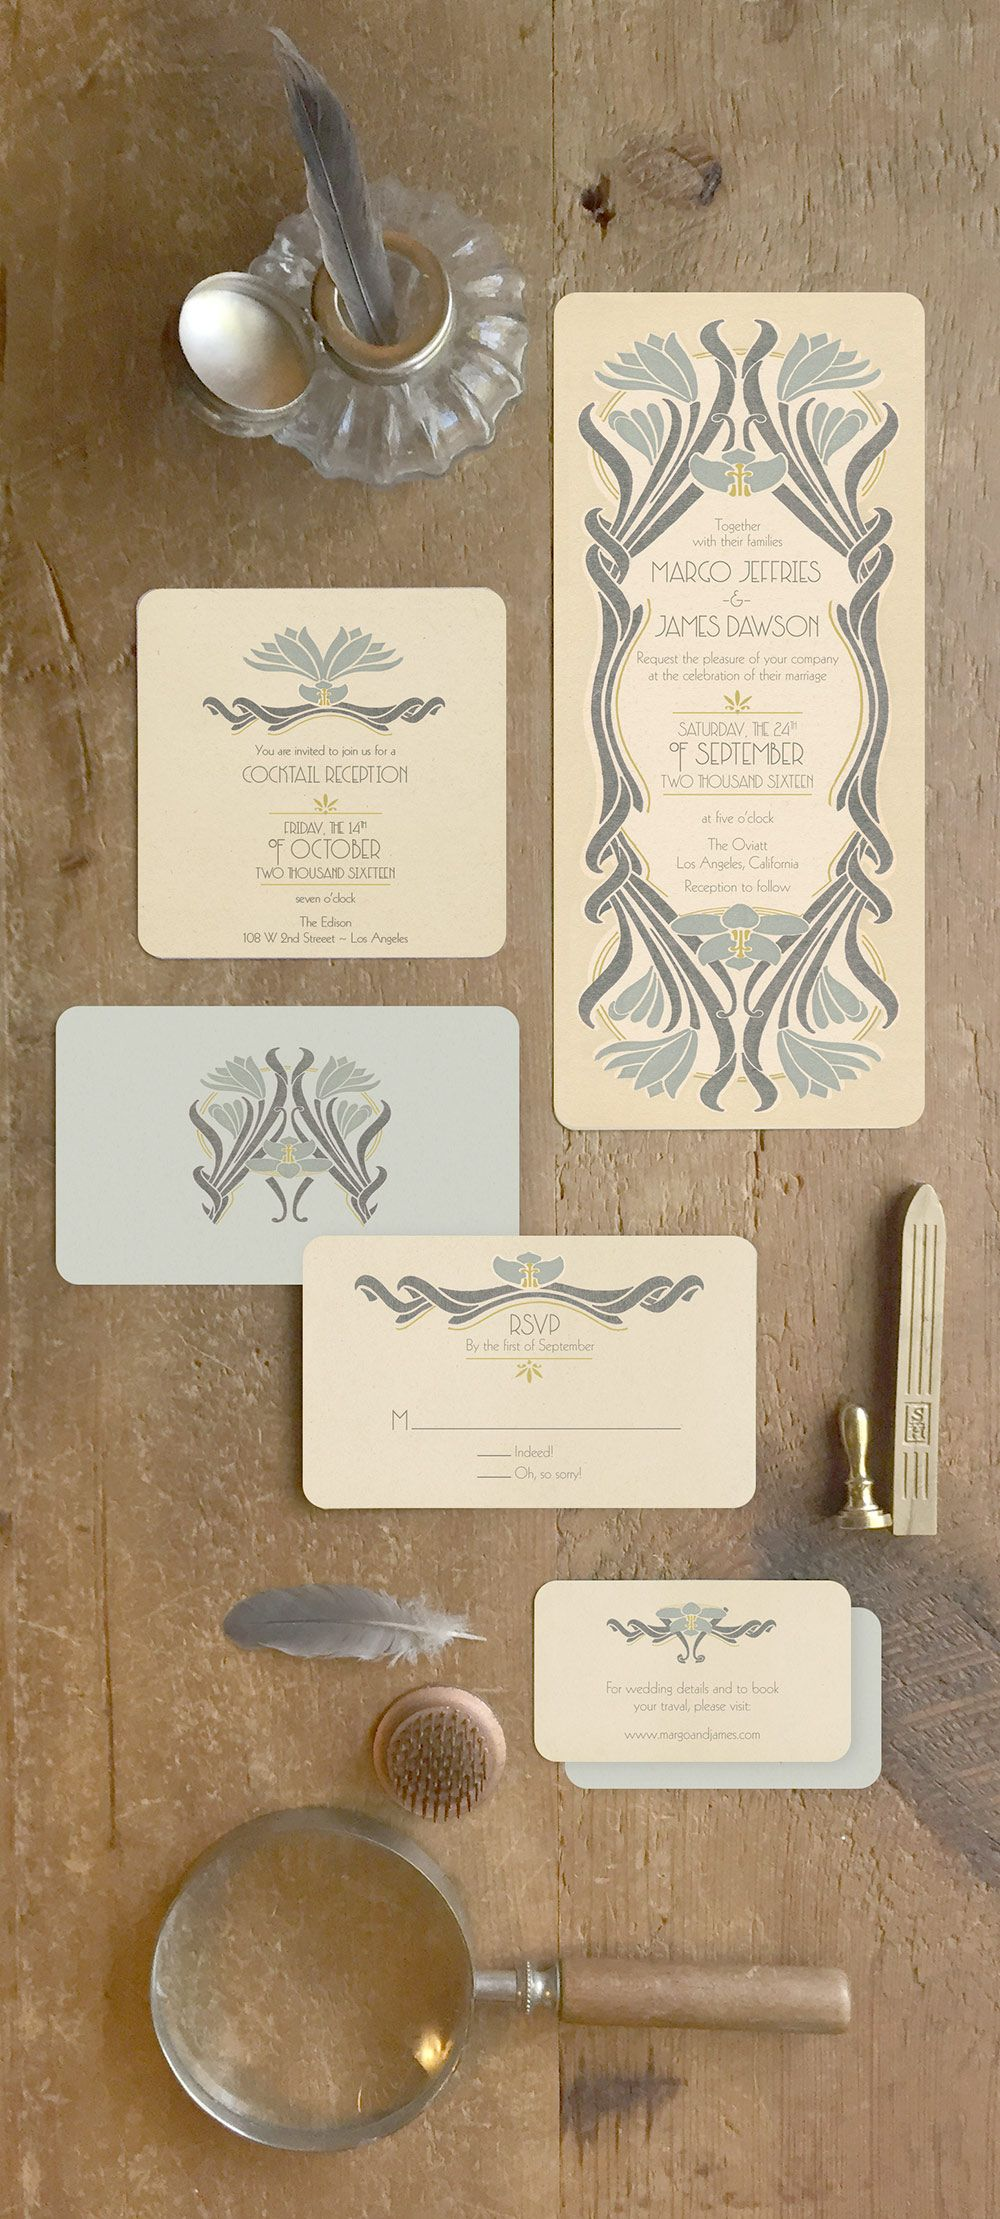 wedding invitation date wording etiquette%0A INTAGE WEDDING INVITATIONS What a great way to set the tone of your wedding   A